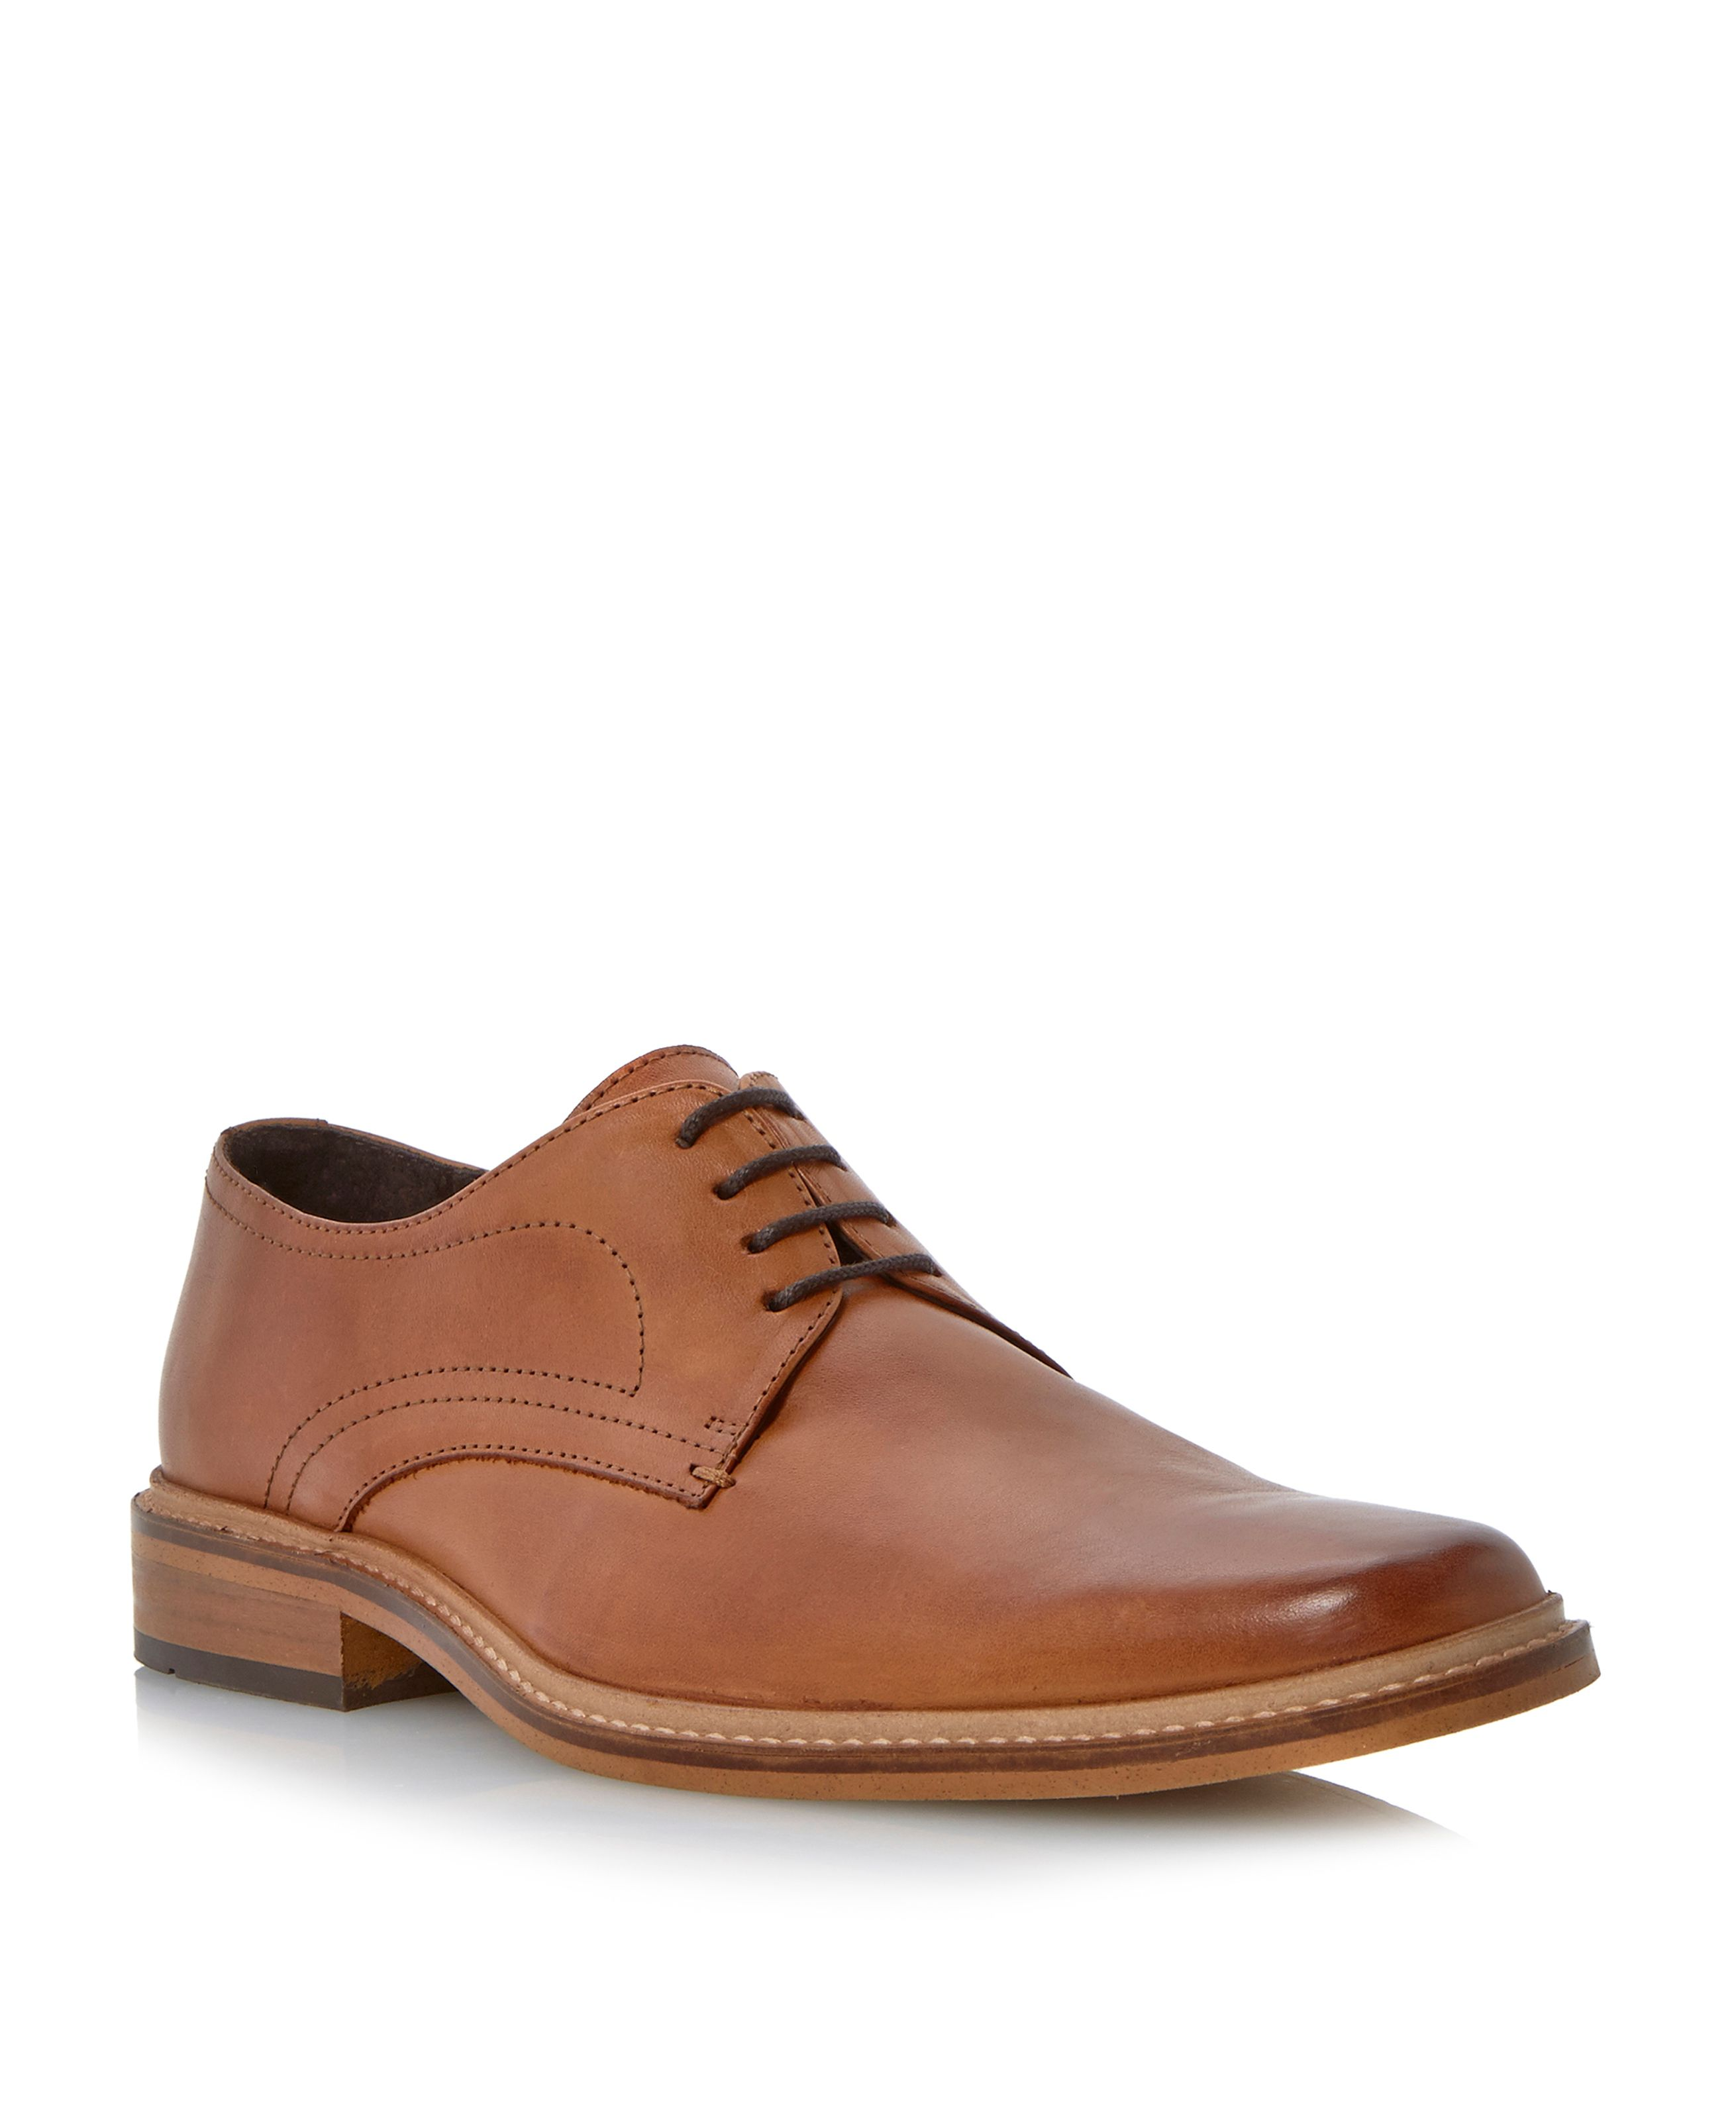 Rotterdam formal lace up gibson shoes